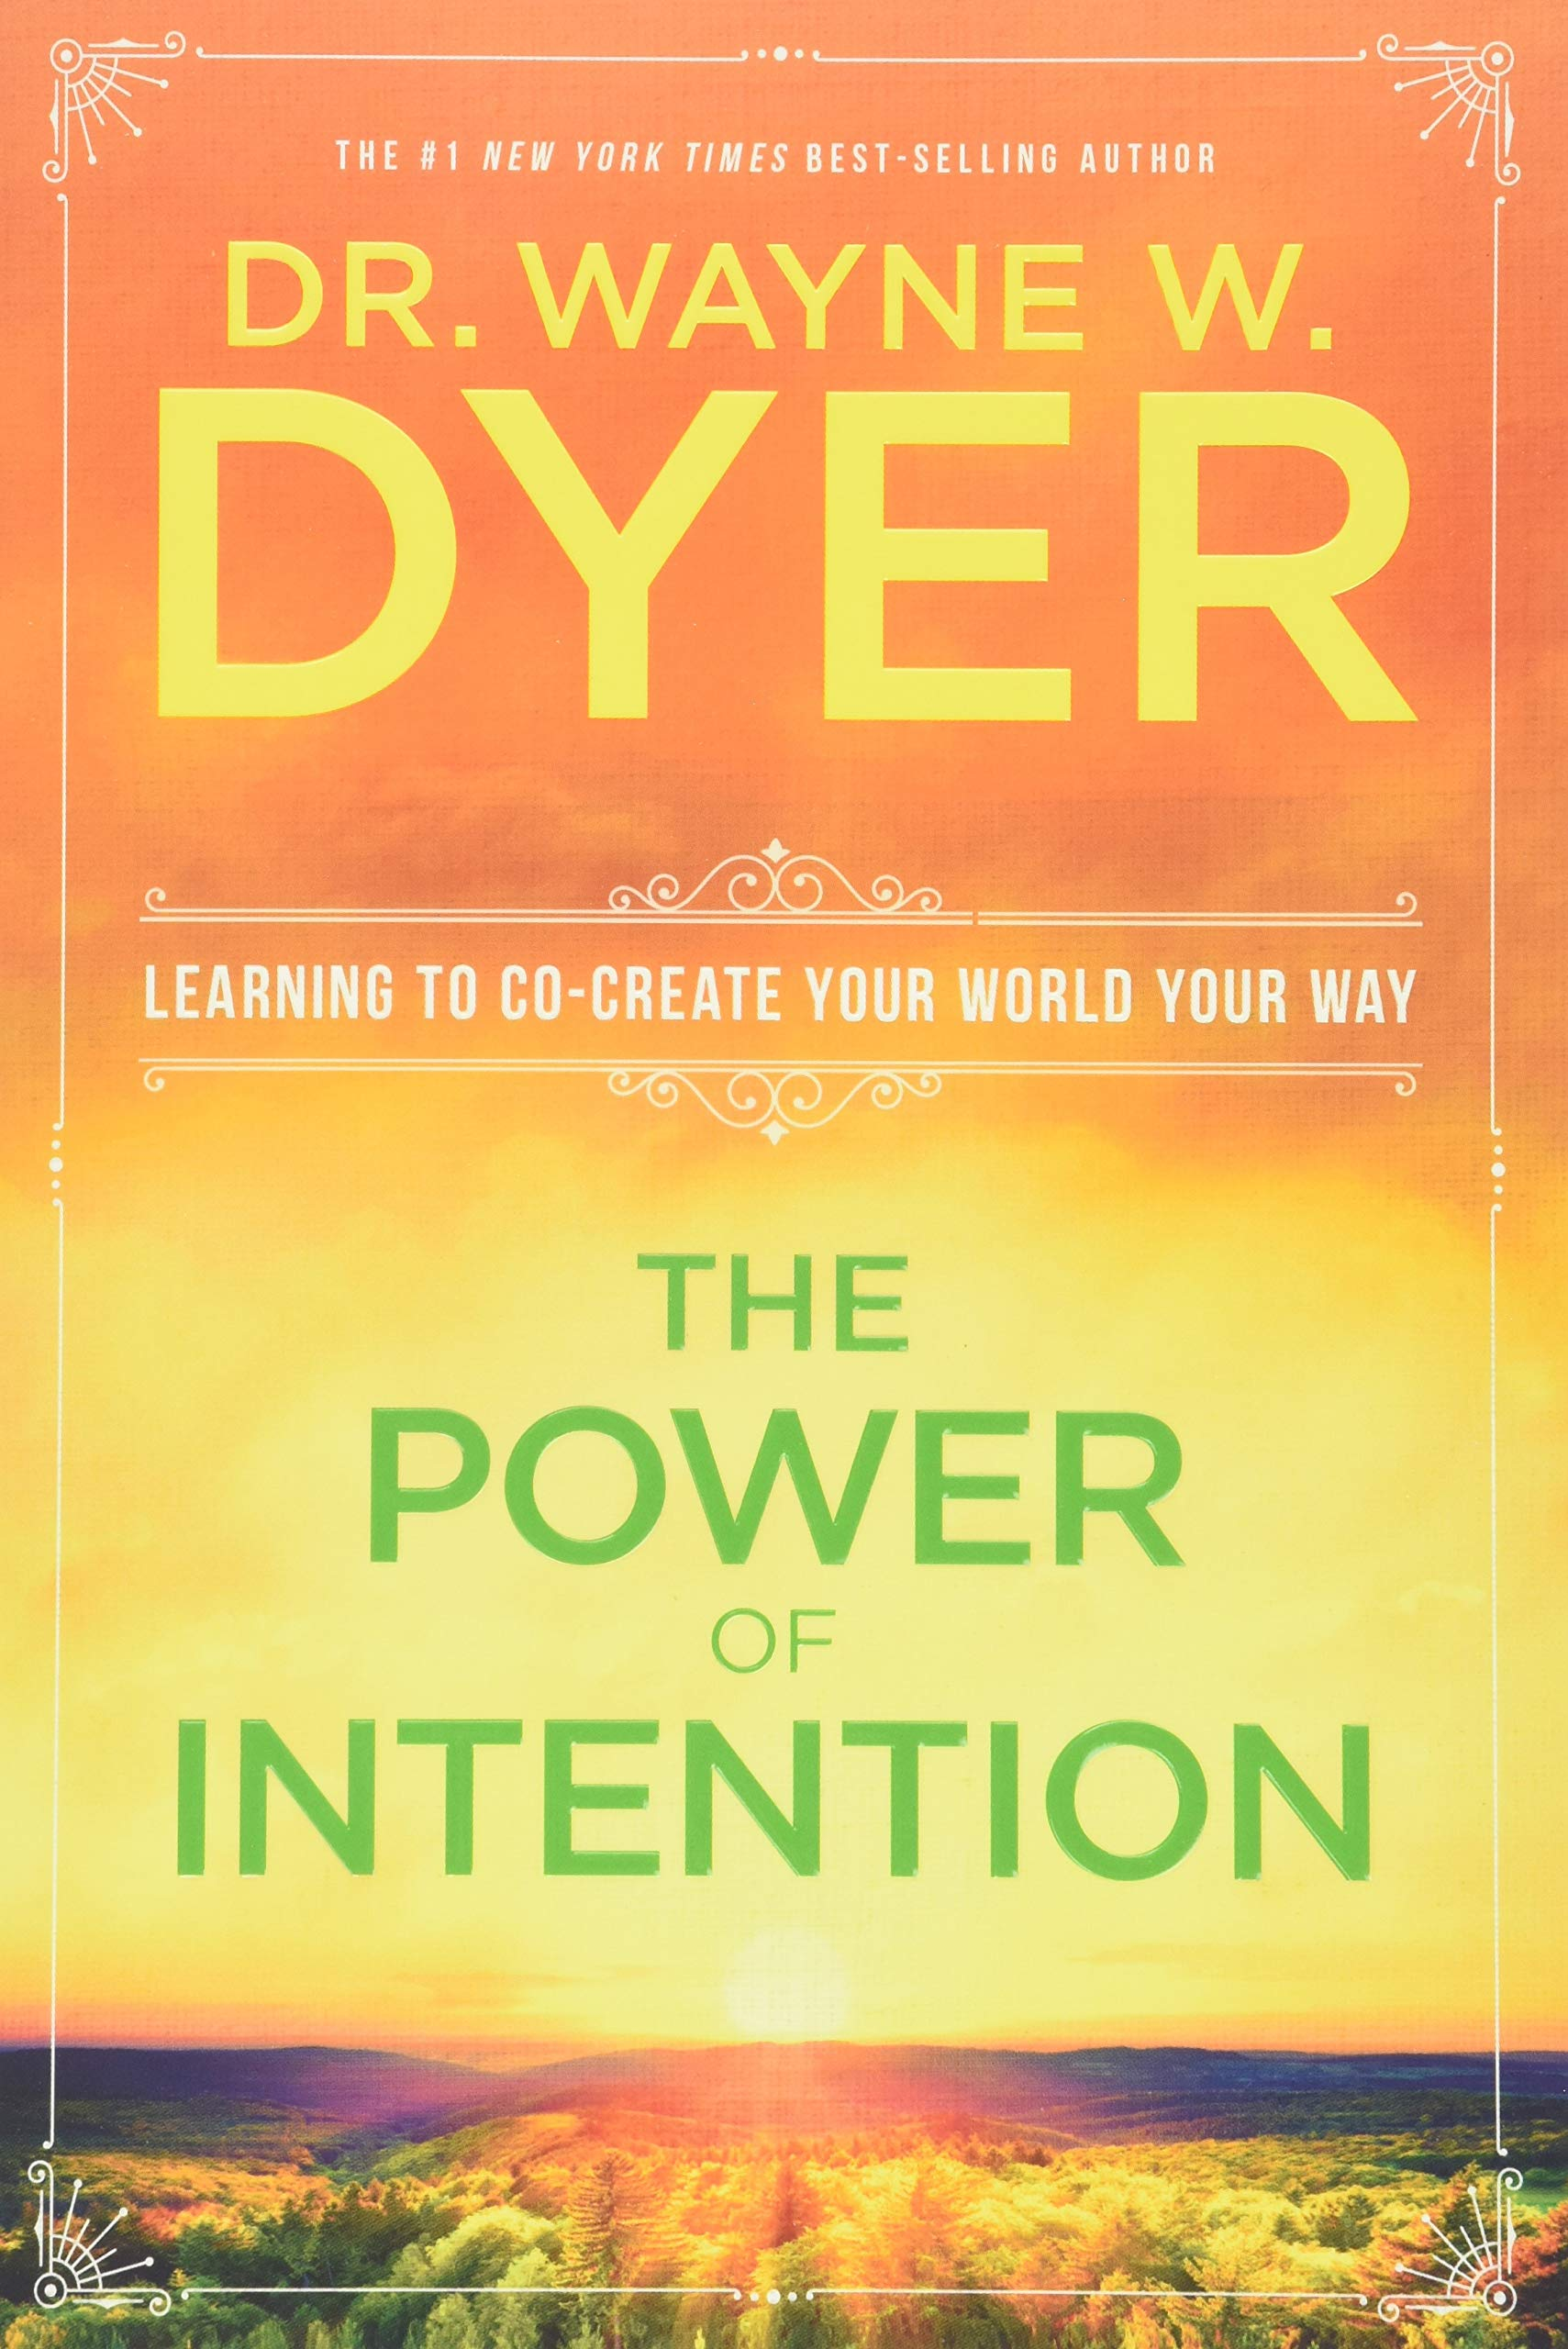 The Power of Intention: Dyer, Wayne W. Dr.: 8601405669872: Amazon.com: Books